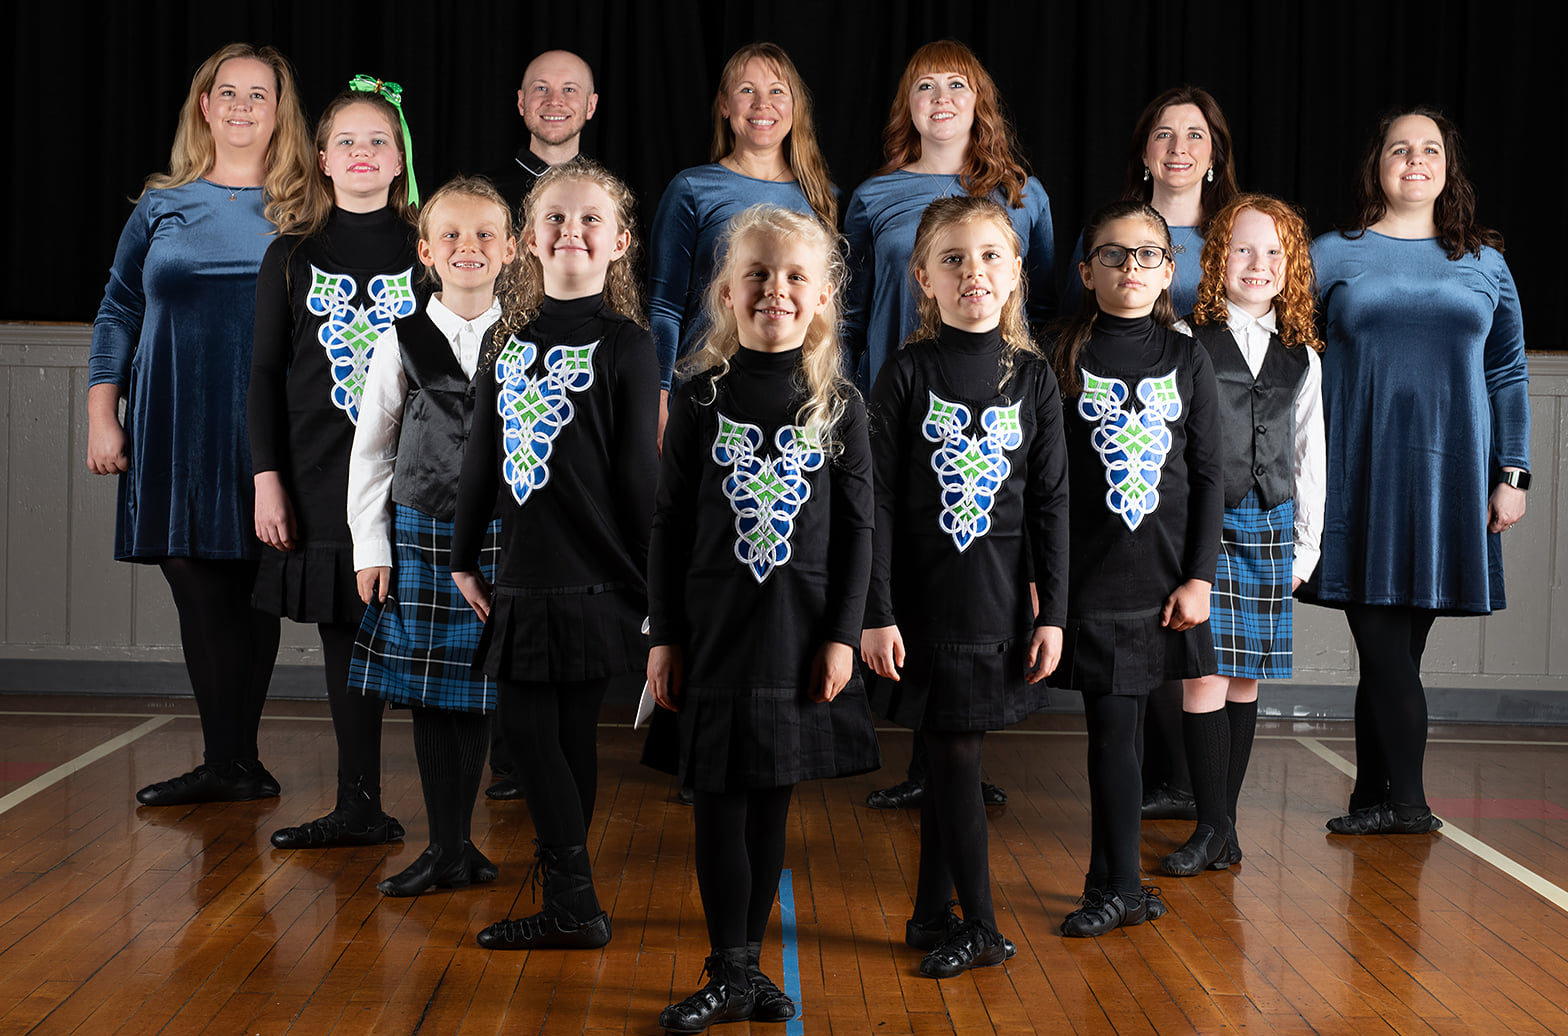 Bluegrass Ceili Academy awarded LexArts community arts grant